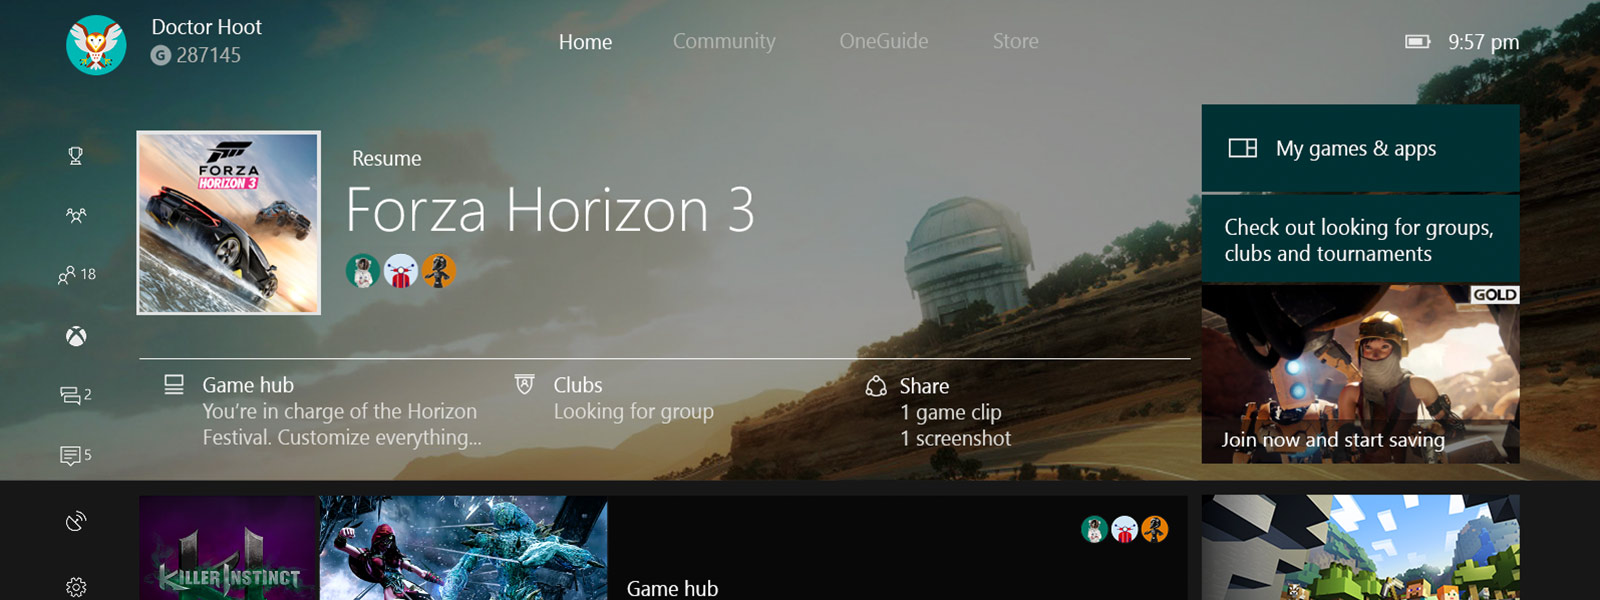 Xbox One Dashboard - Home